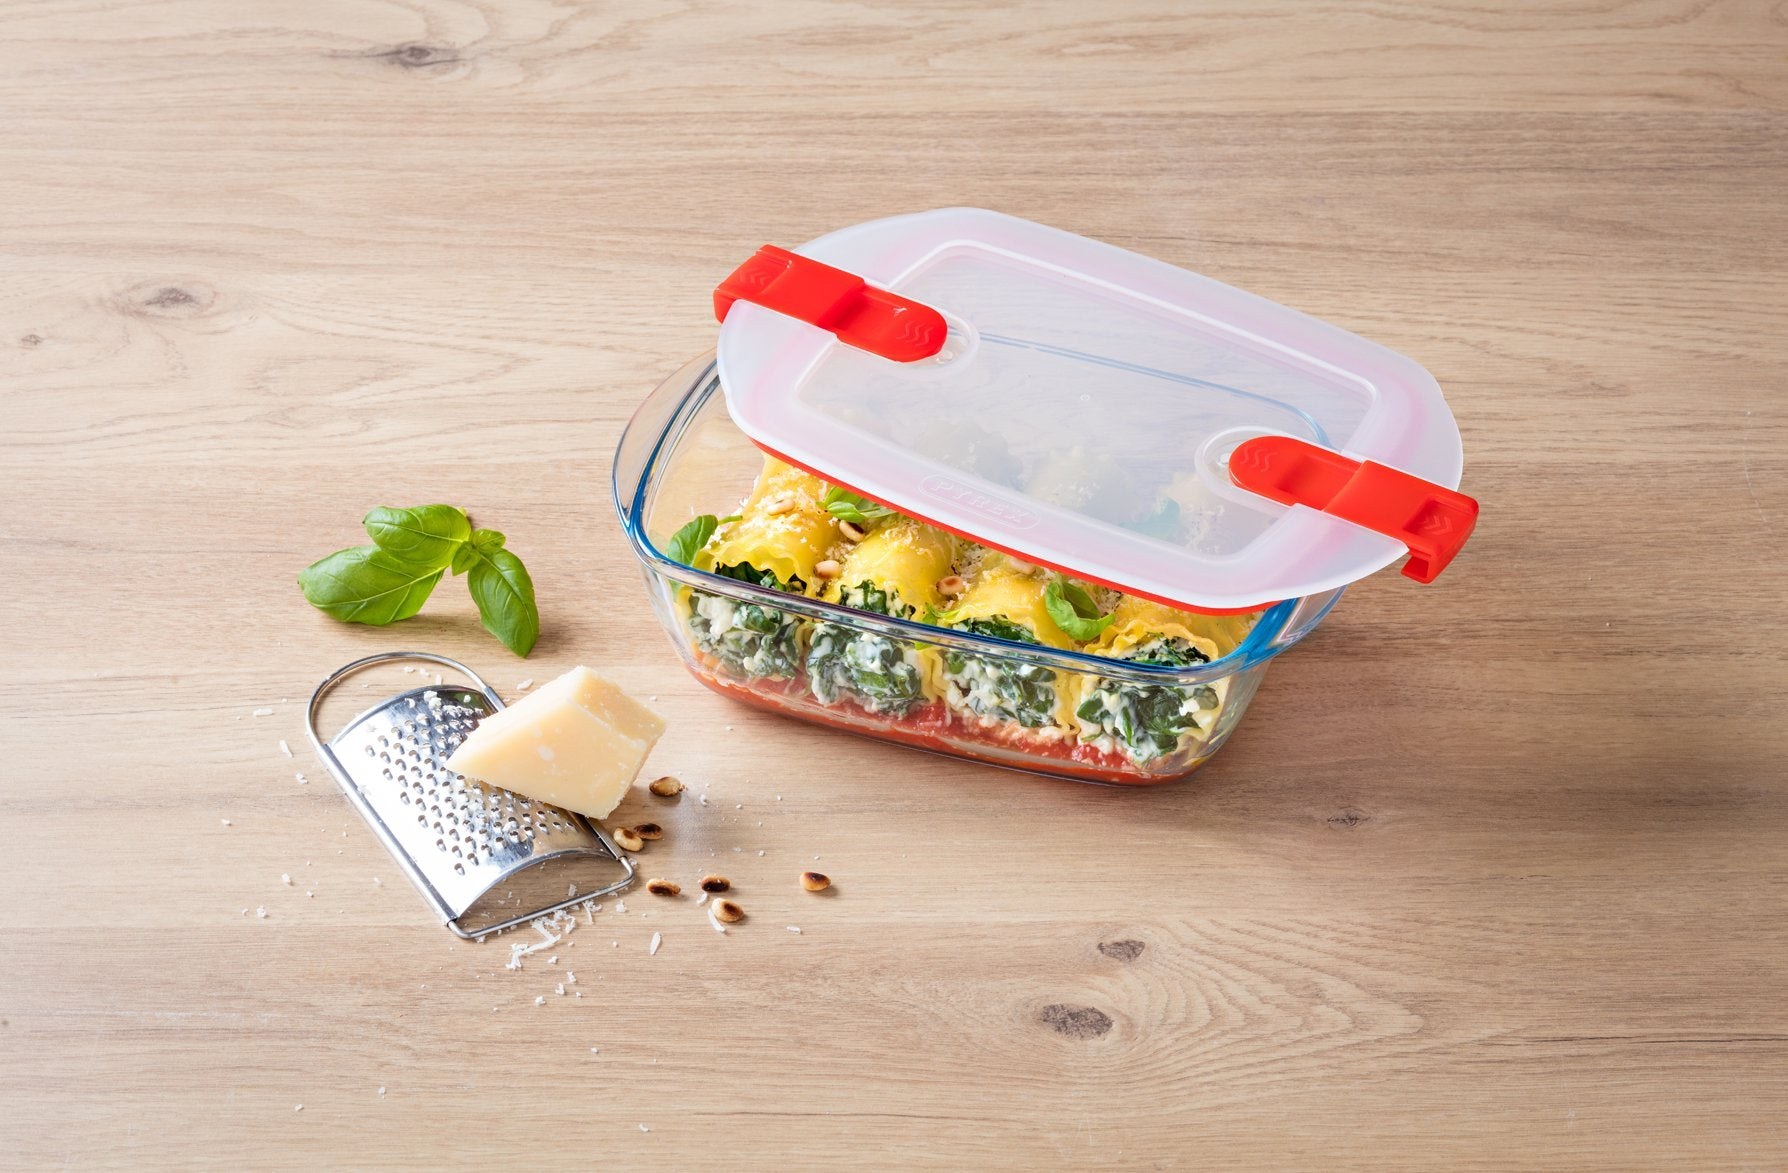 Glass containers - microwave safe lids